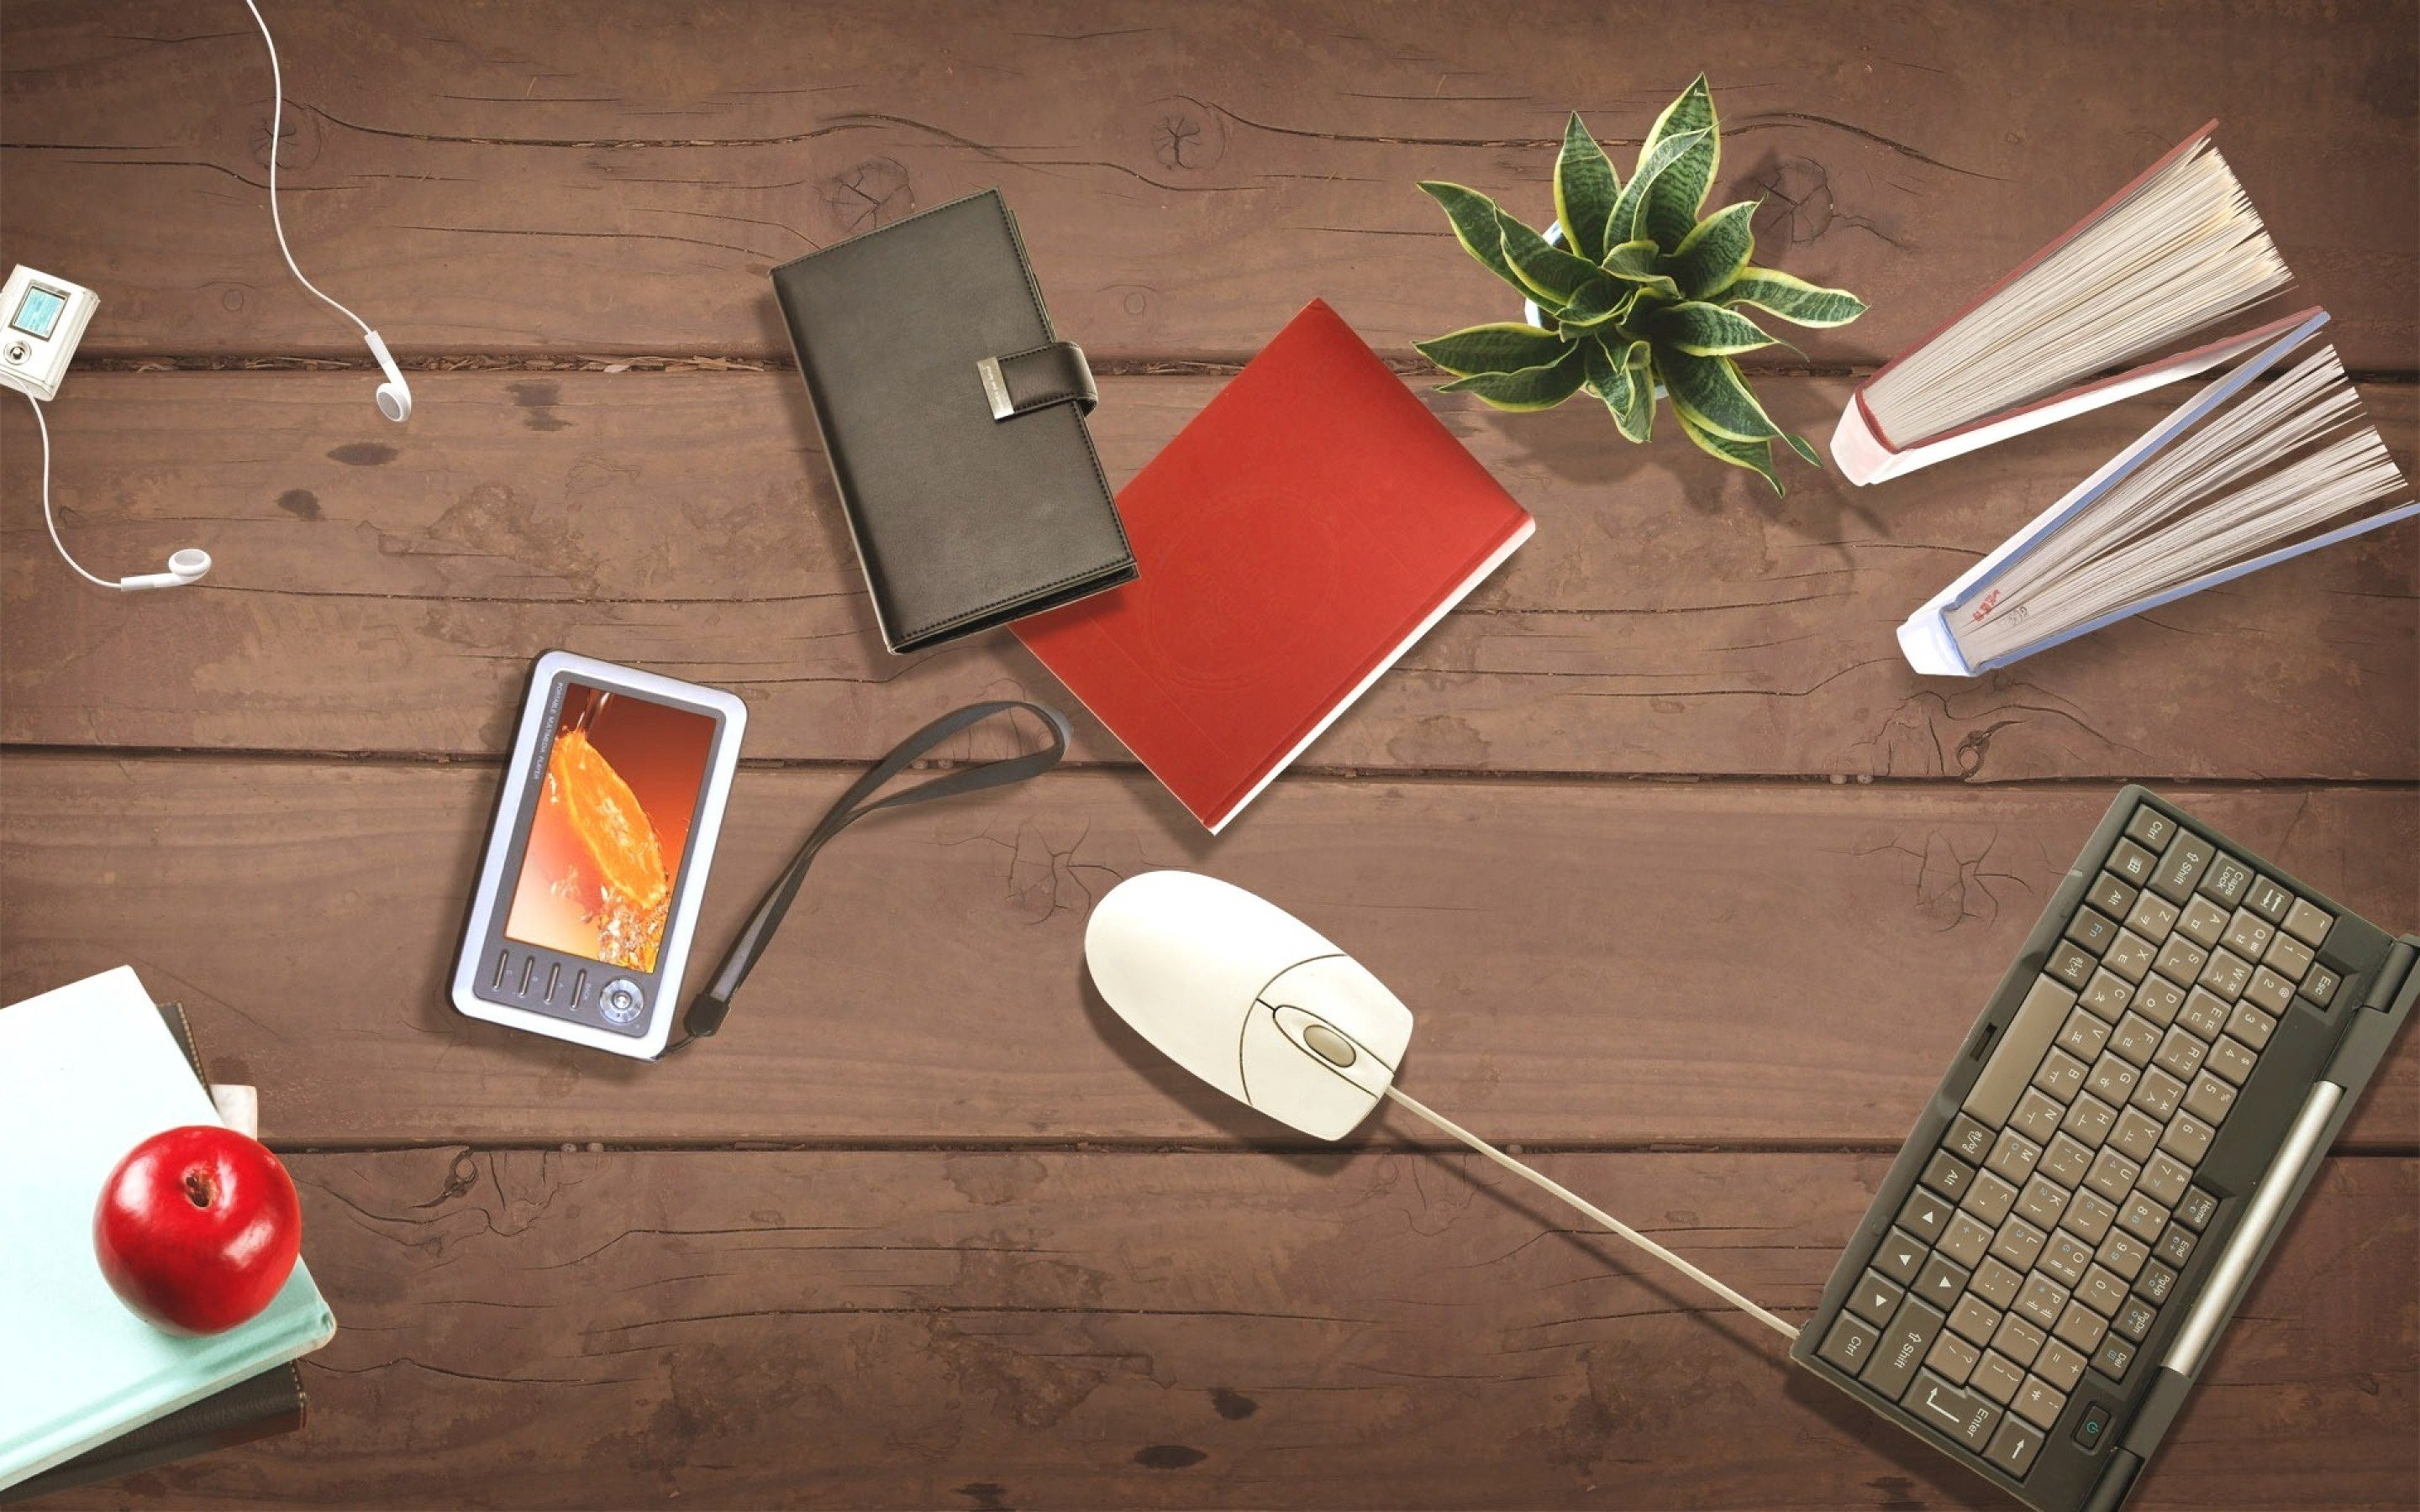 Desk wallpaper ·â' Download free amazing full HD wallpapers for